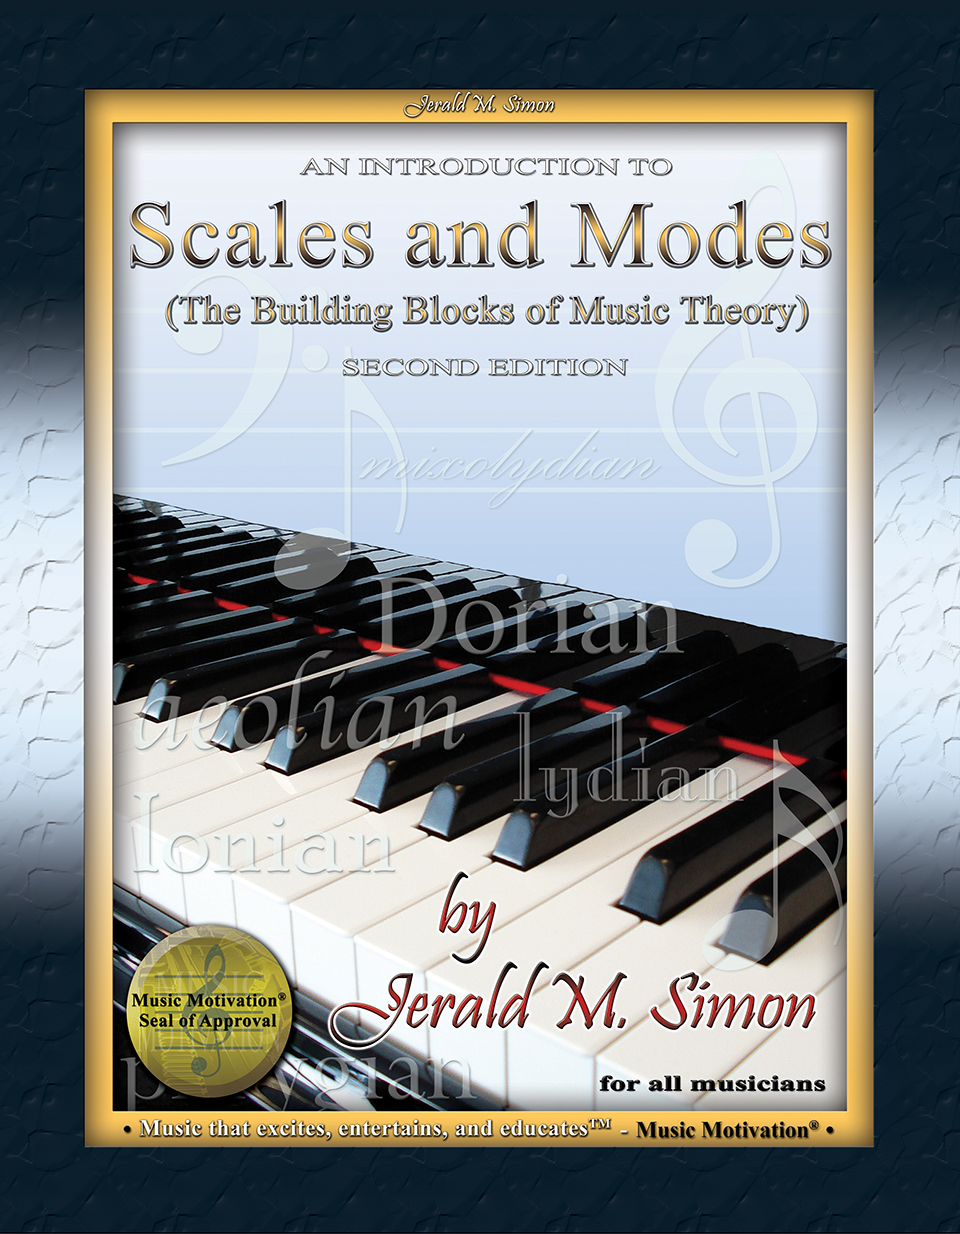 An Introduction to Scales and Modes (second edition) - PDF download (single  use license)